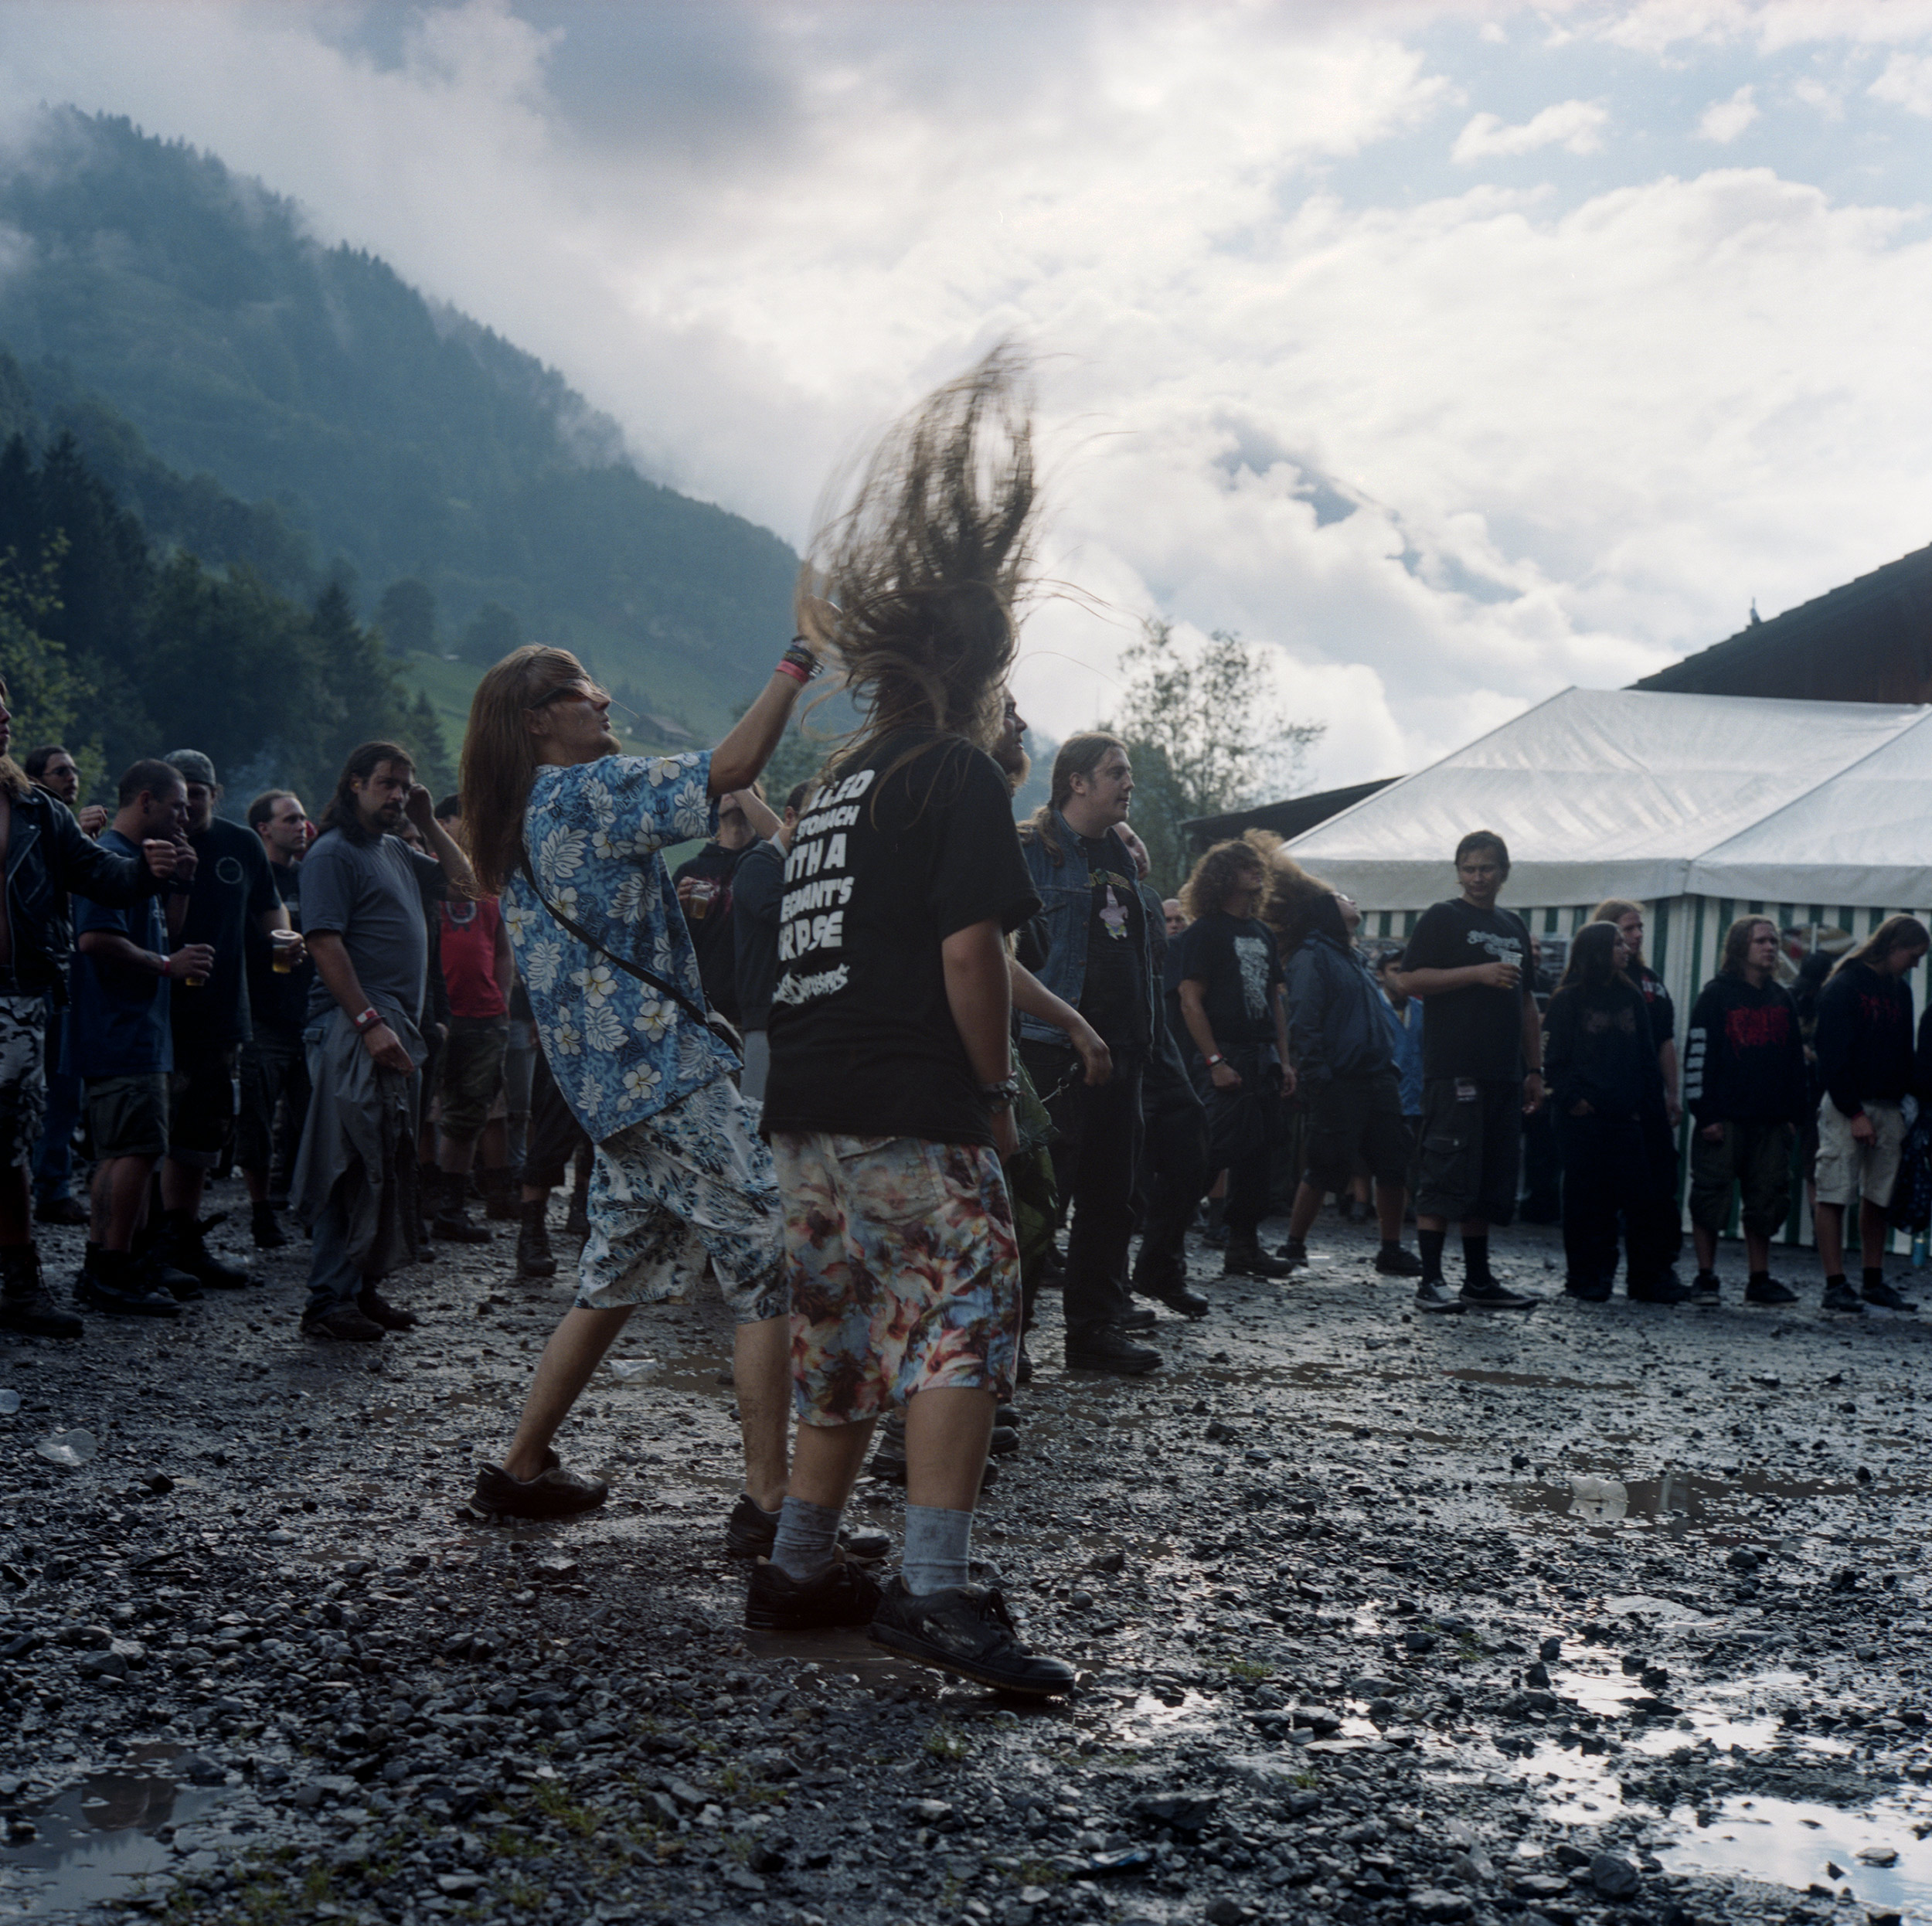 Mountains Of Death Festival / Muotatal